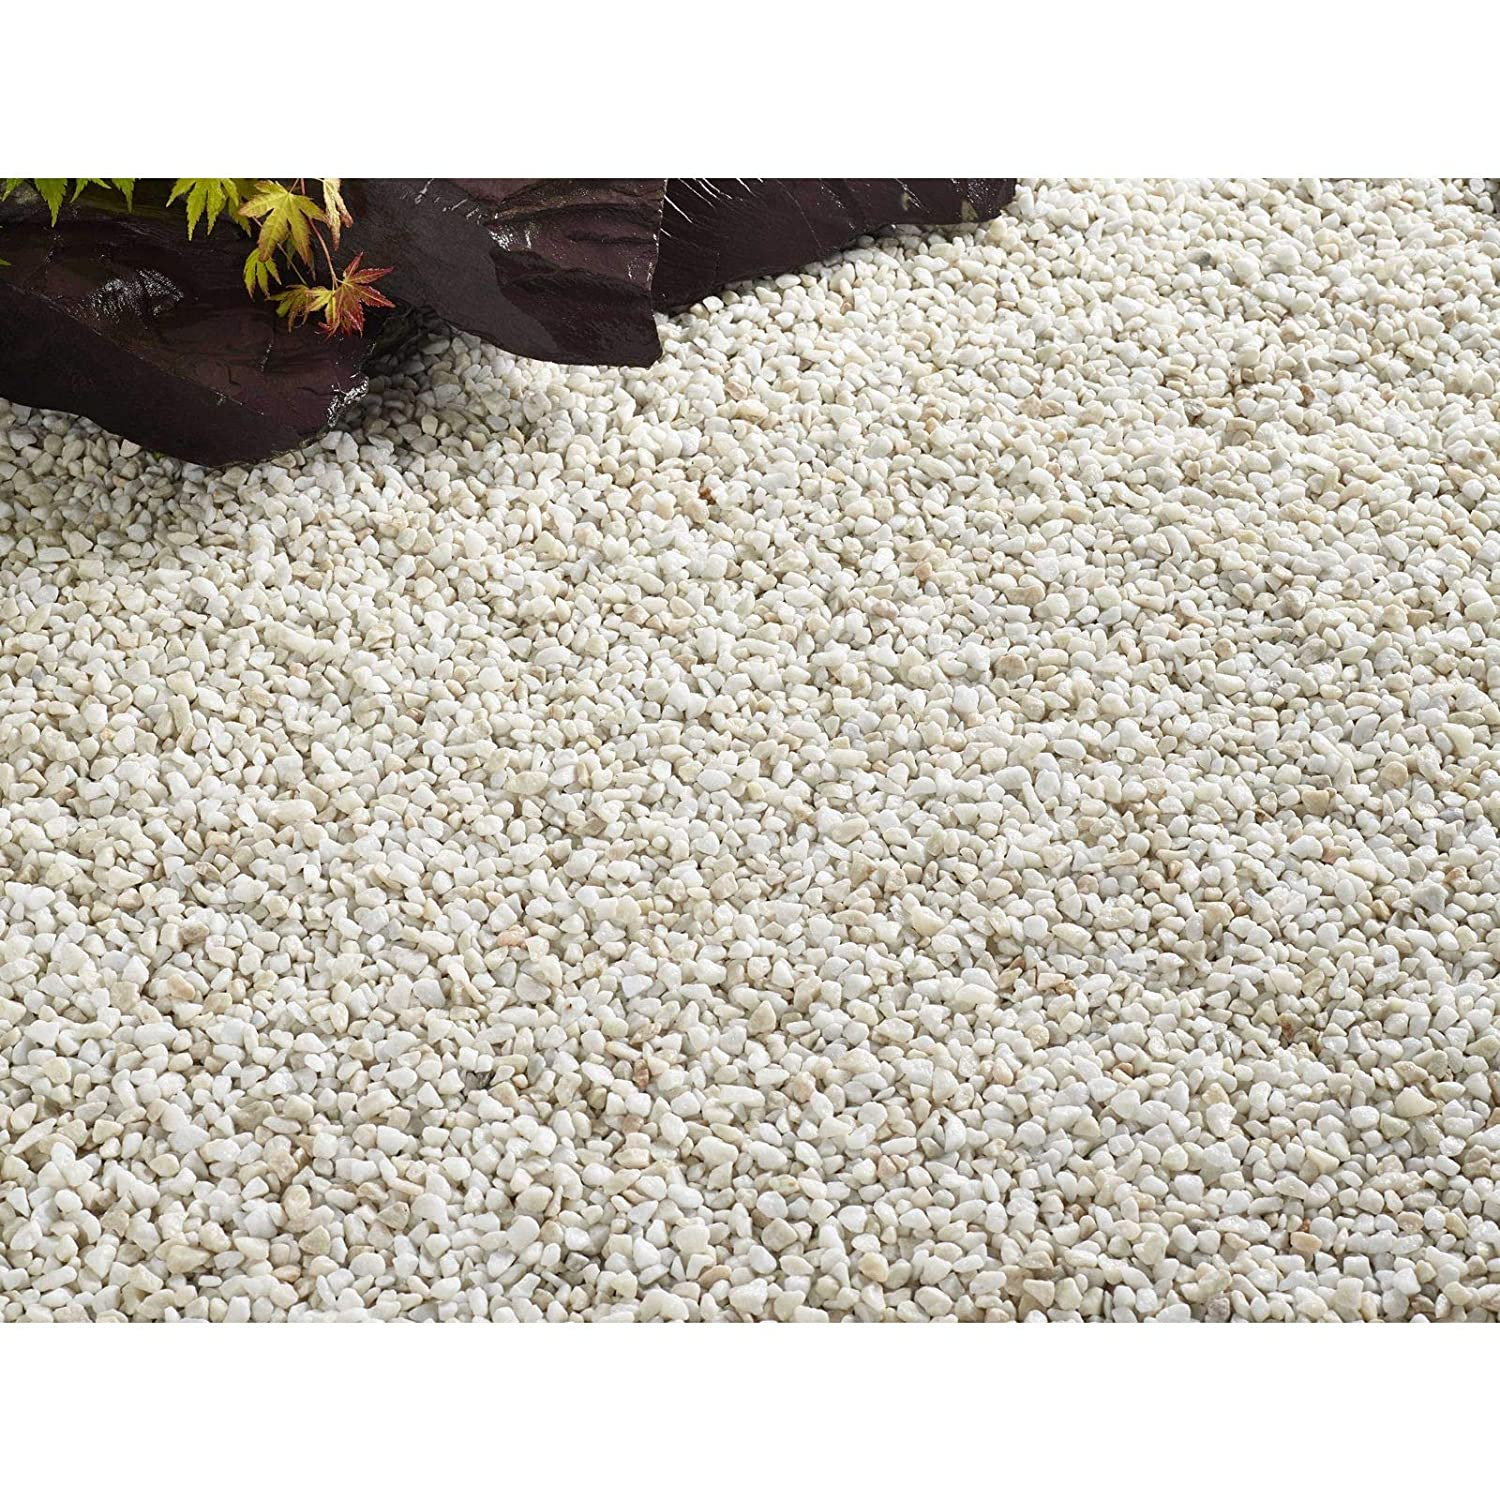 6MM Alpine White Gravel for Topping Up Garden Pots Fish Tanks and Aquarium Garden Pathways Fish Friendly Stone Chippings 5KG